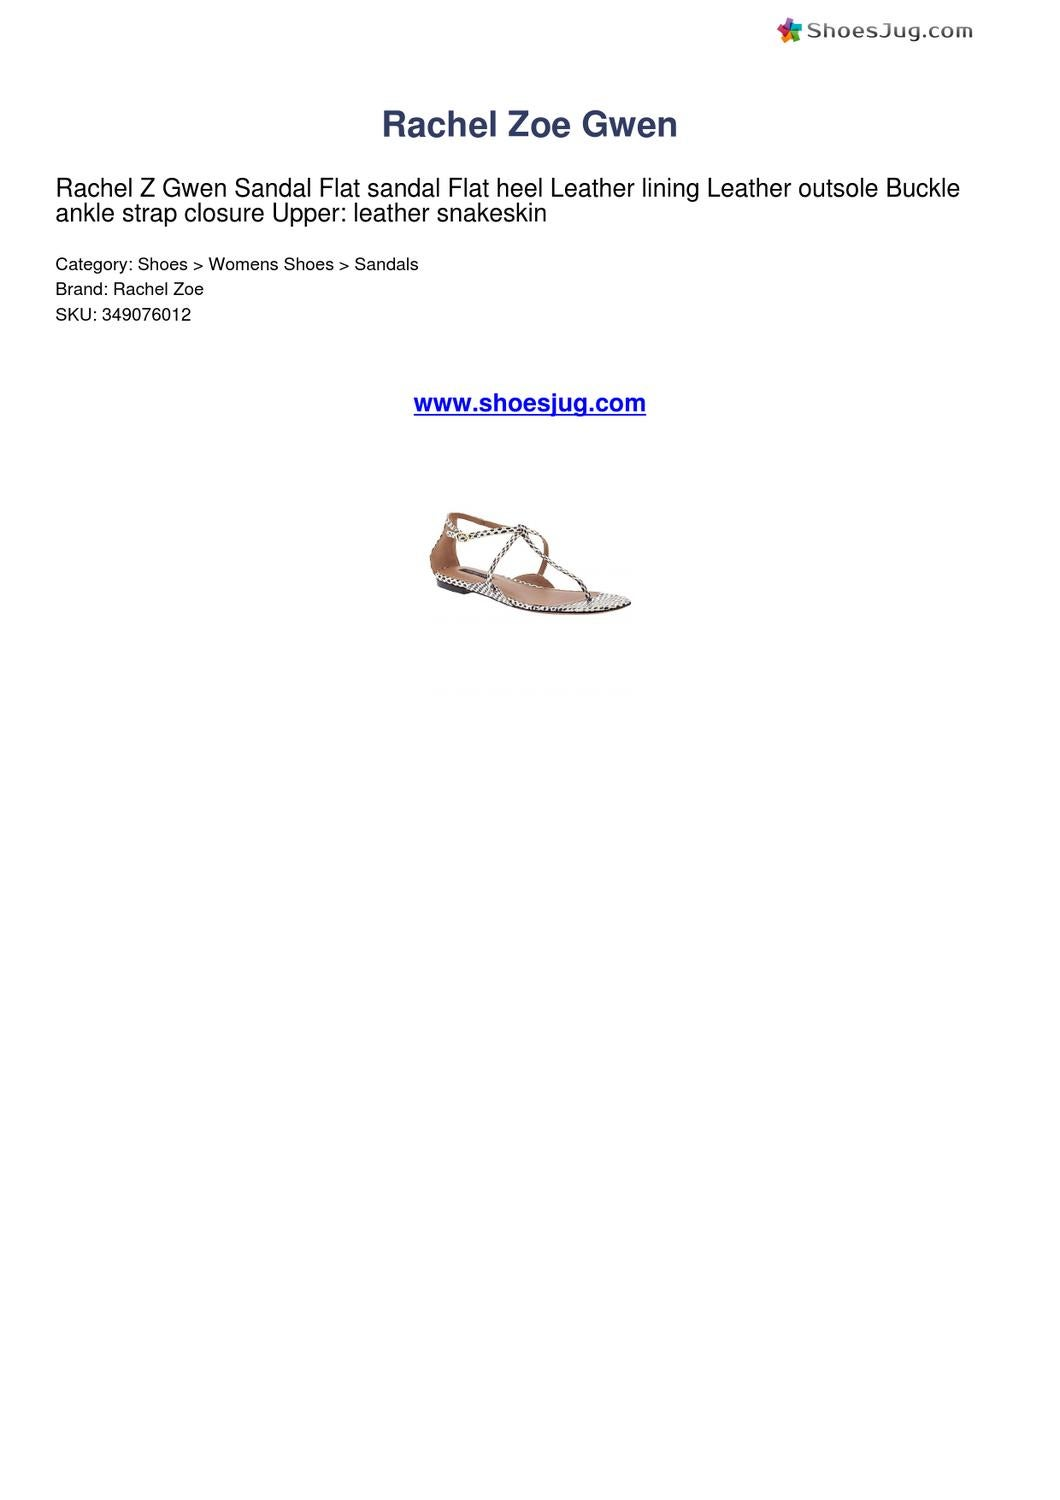 99df2245a Rachel Zoe Gwen Shoesjug Review 3120 by mike regot - issuu